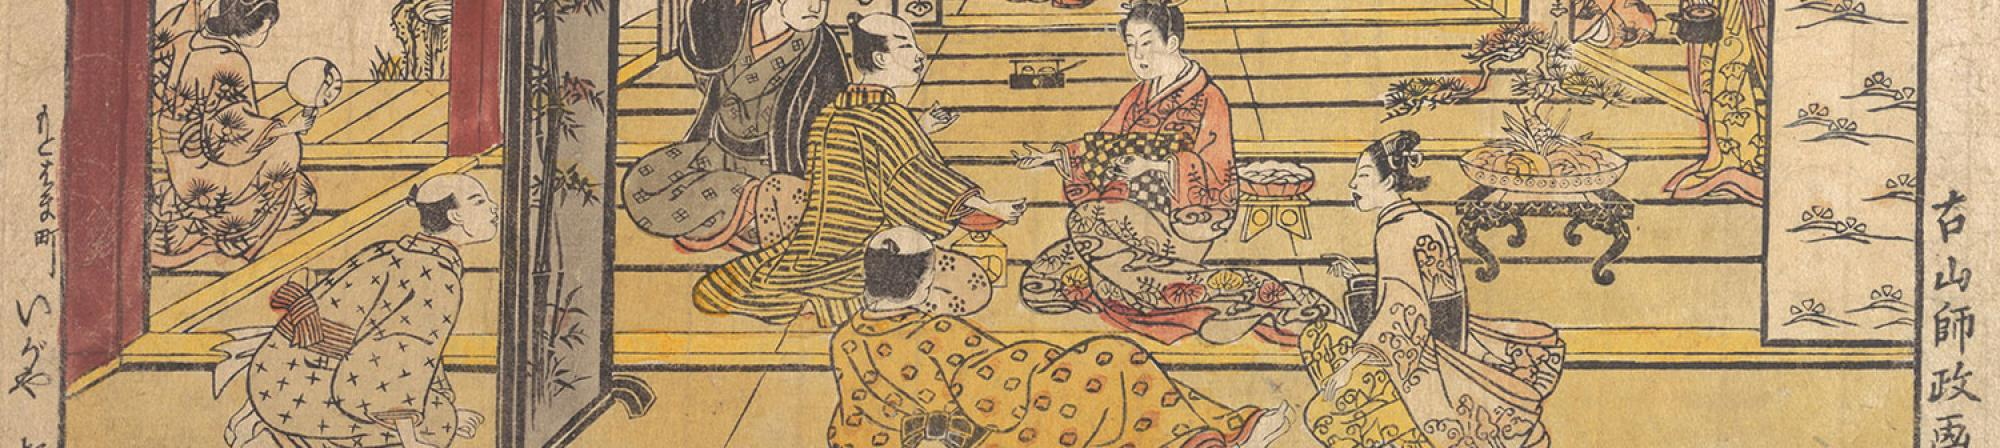 "Detail of ""A Game of Hand Sumo in the New Yoshiwara"" by Furuyama Moromasa"